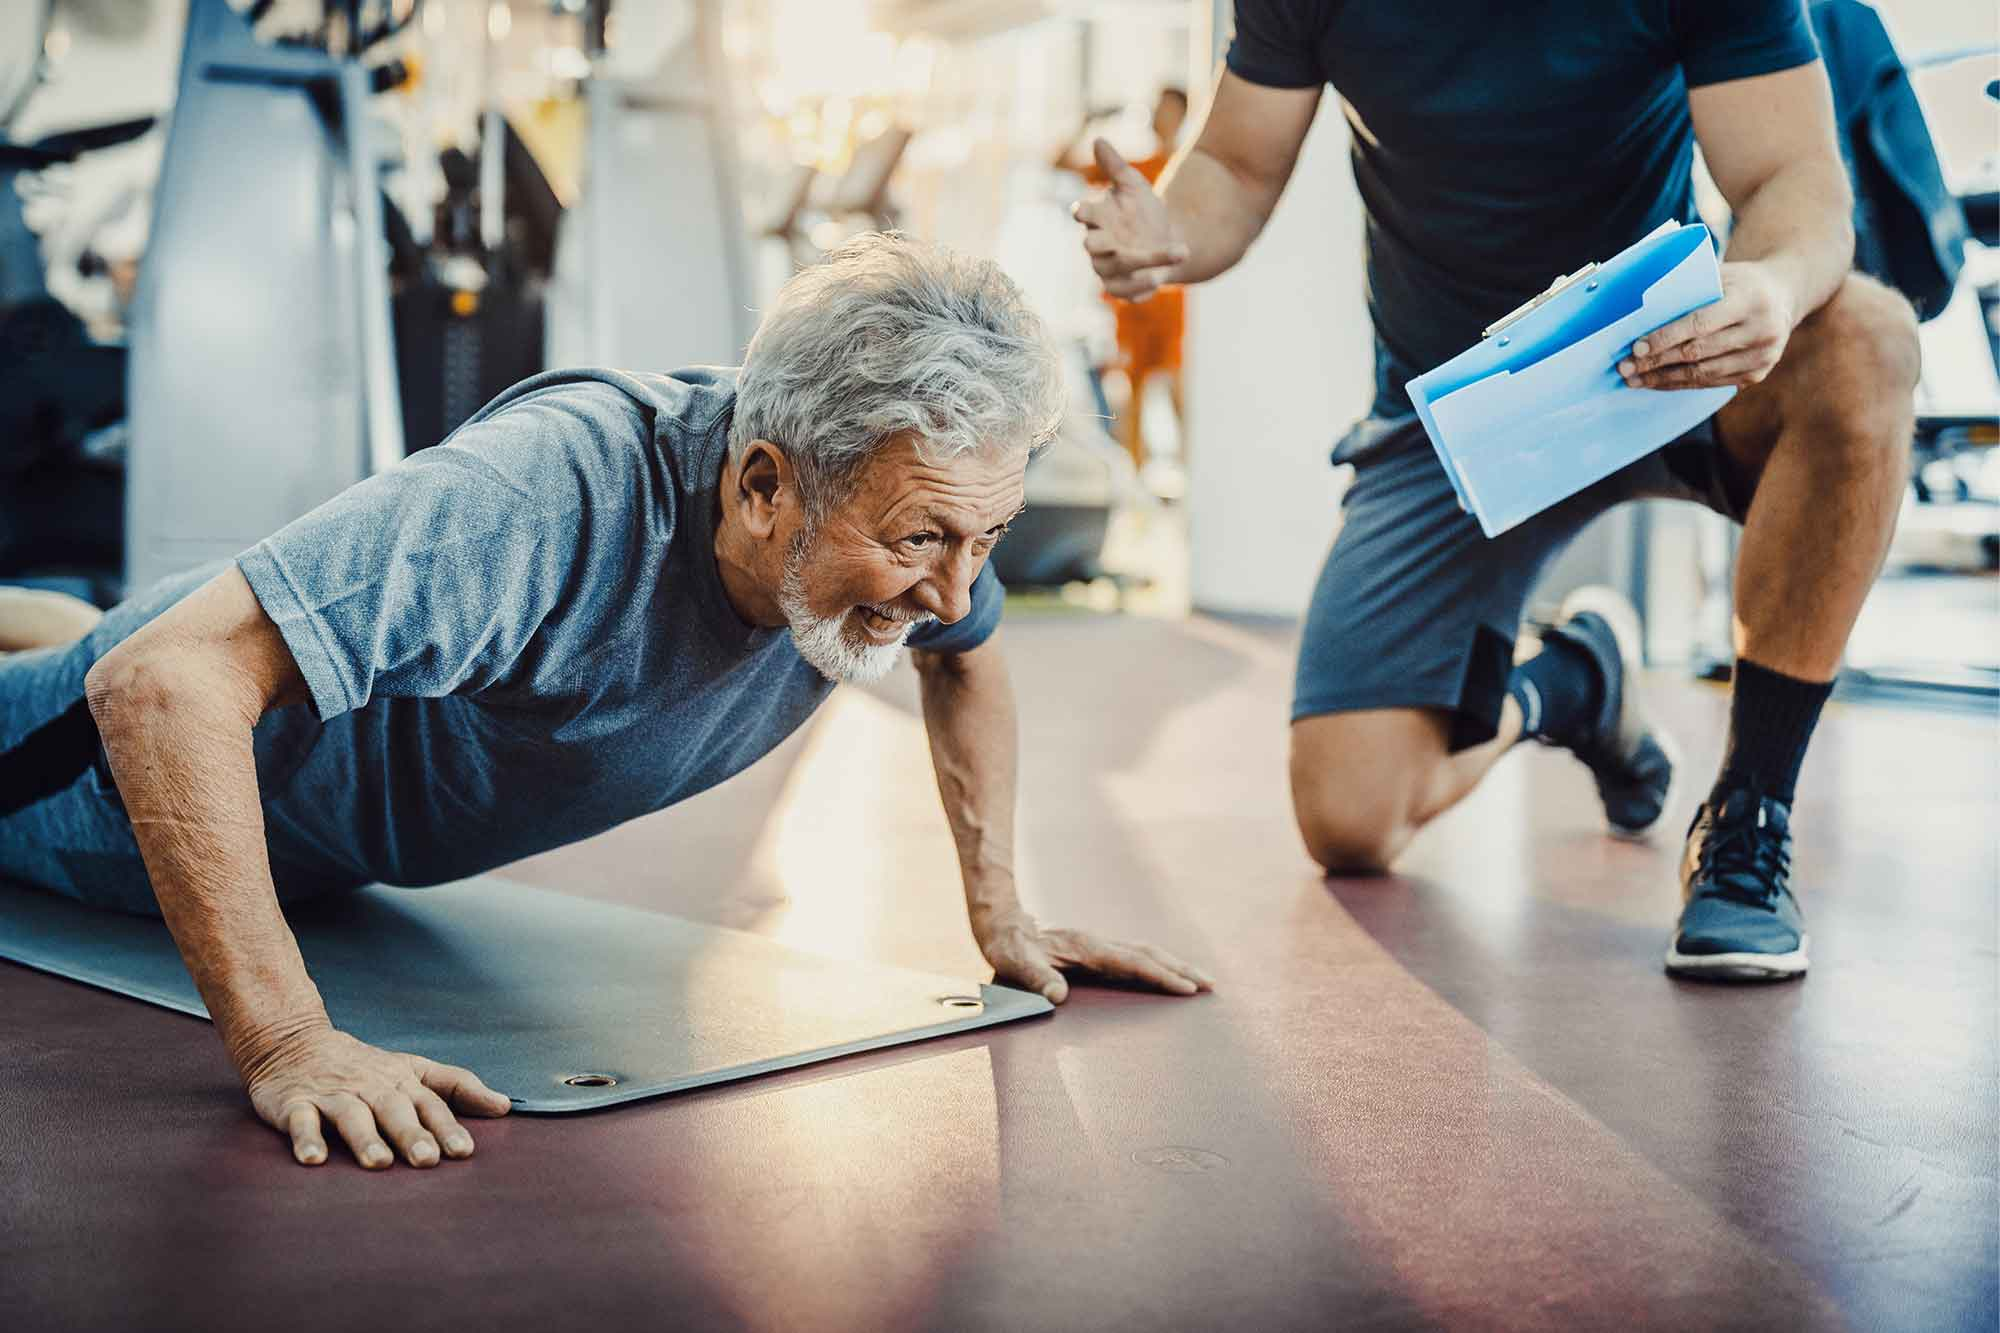 Personal trainer older adults